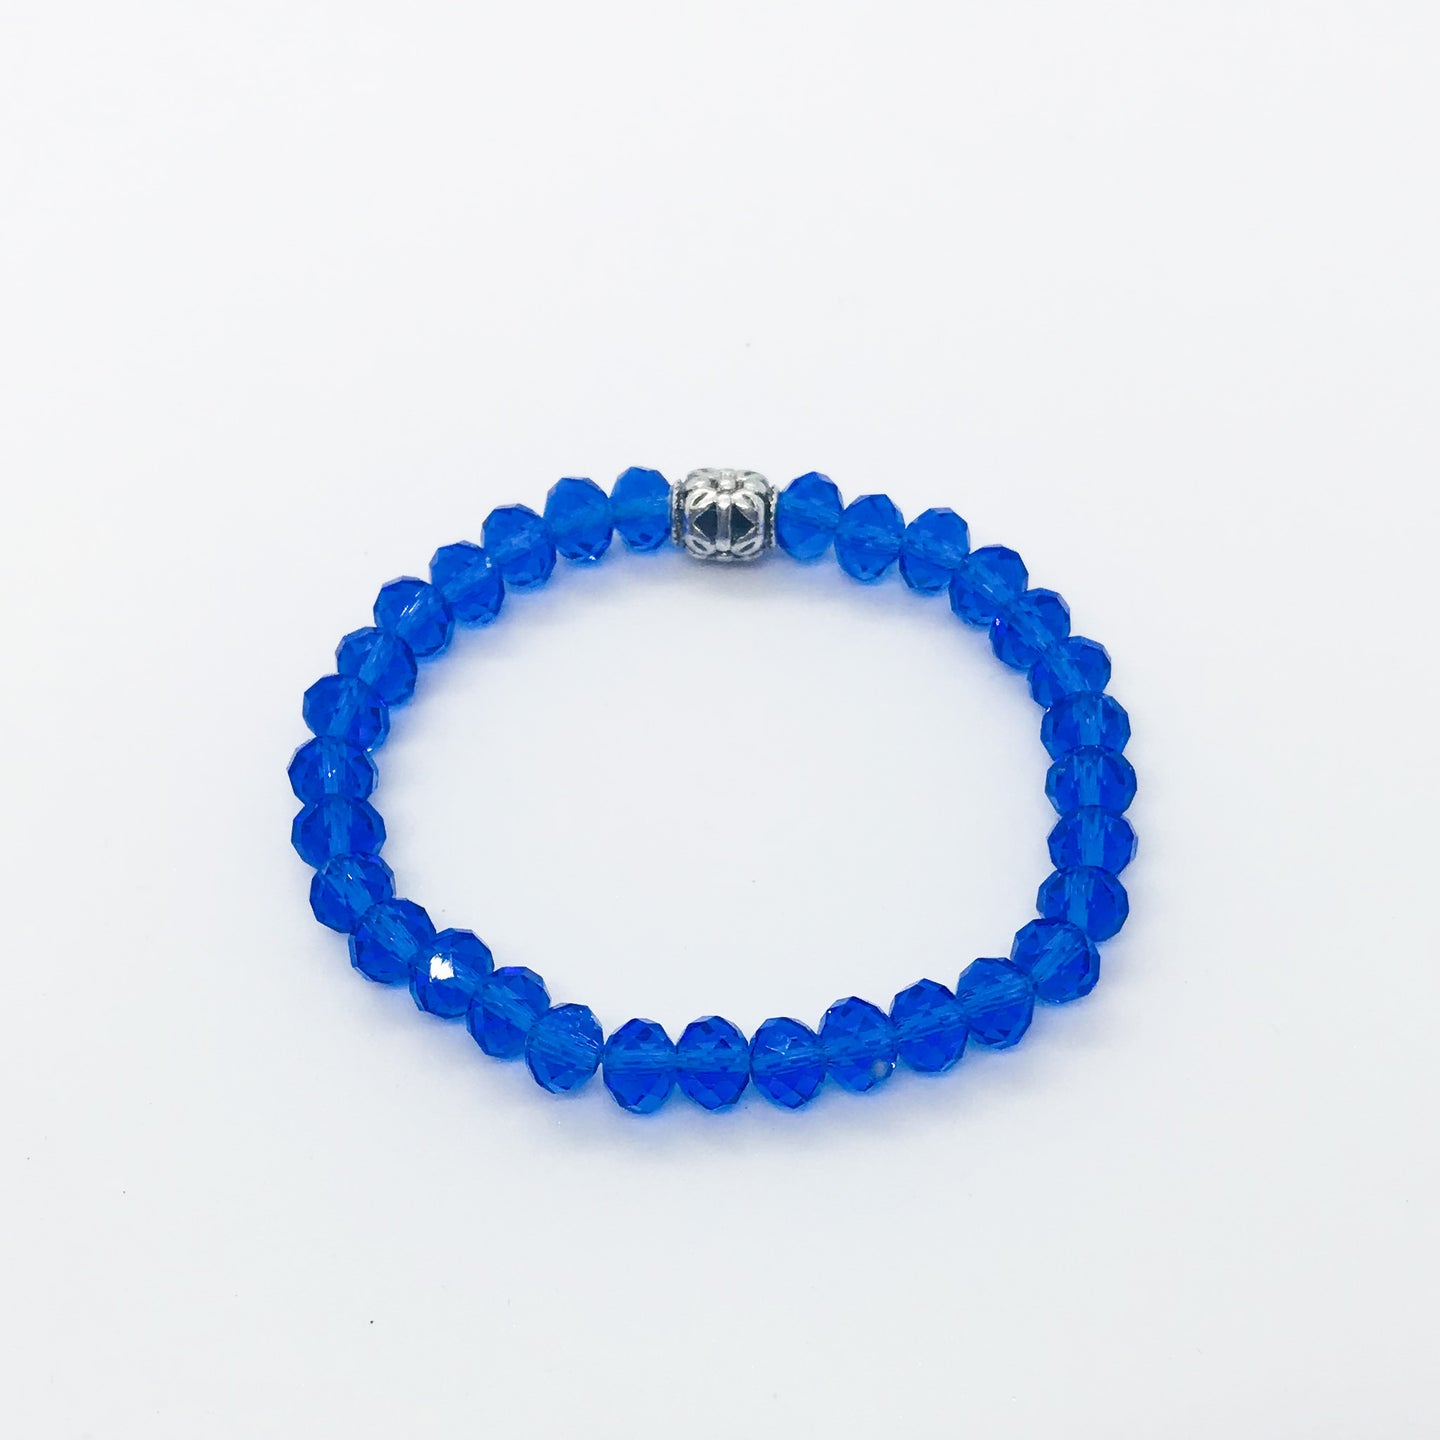 Glass Bead Stretchy Bracelet - B978